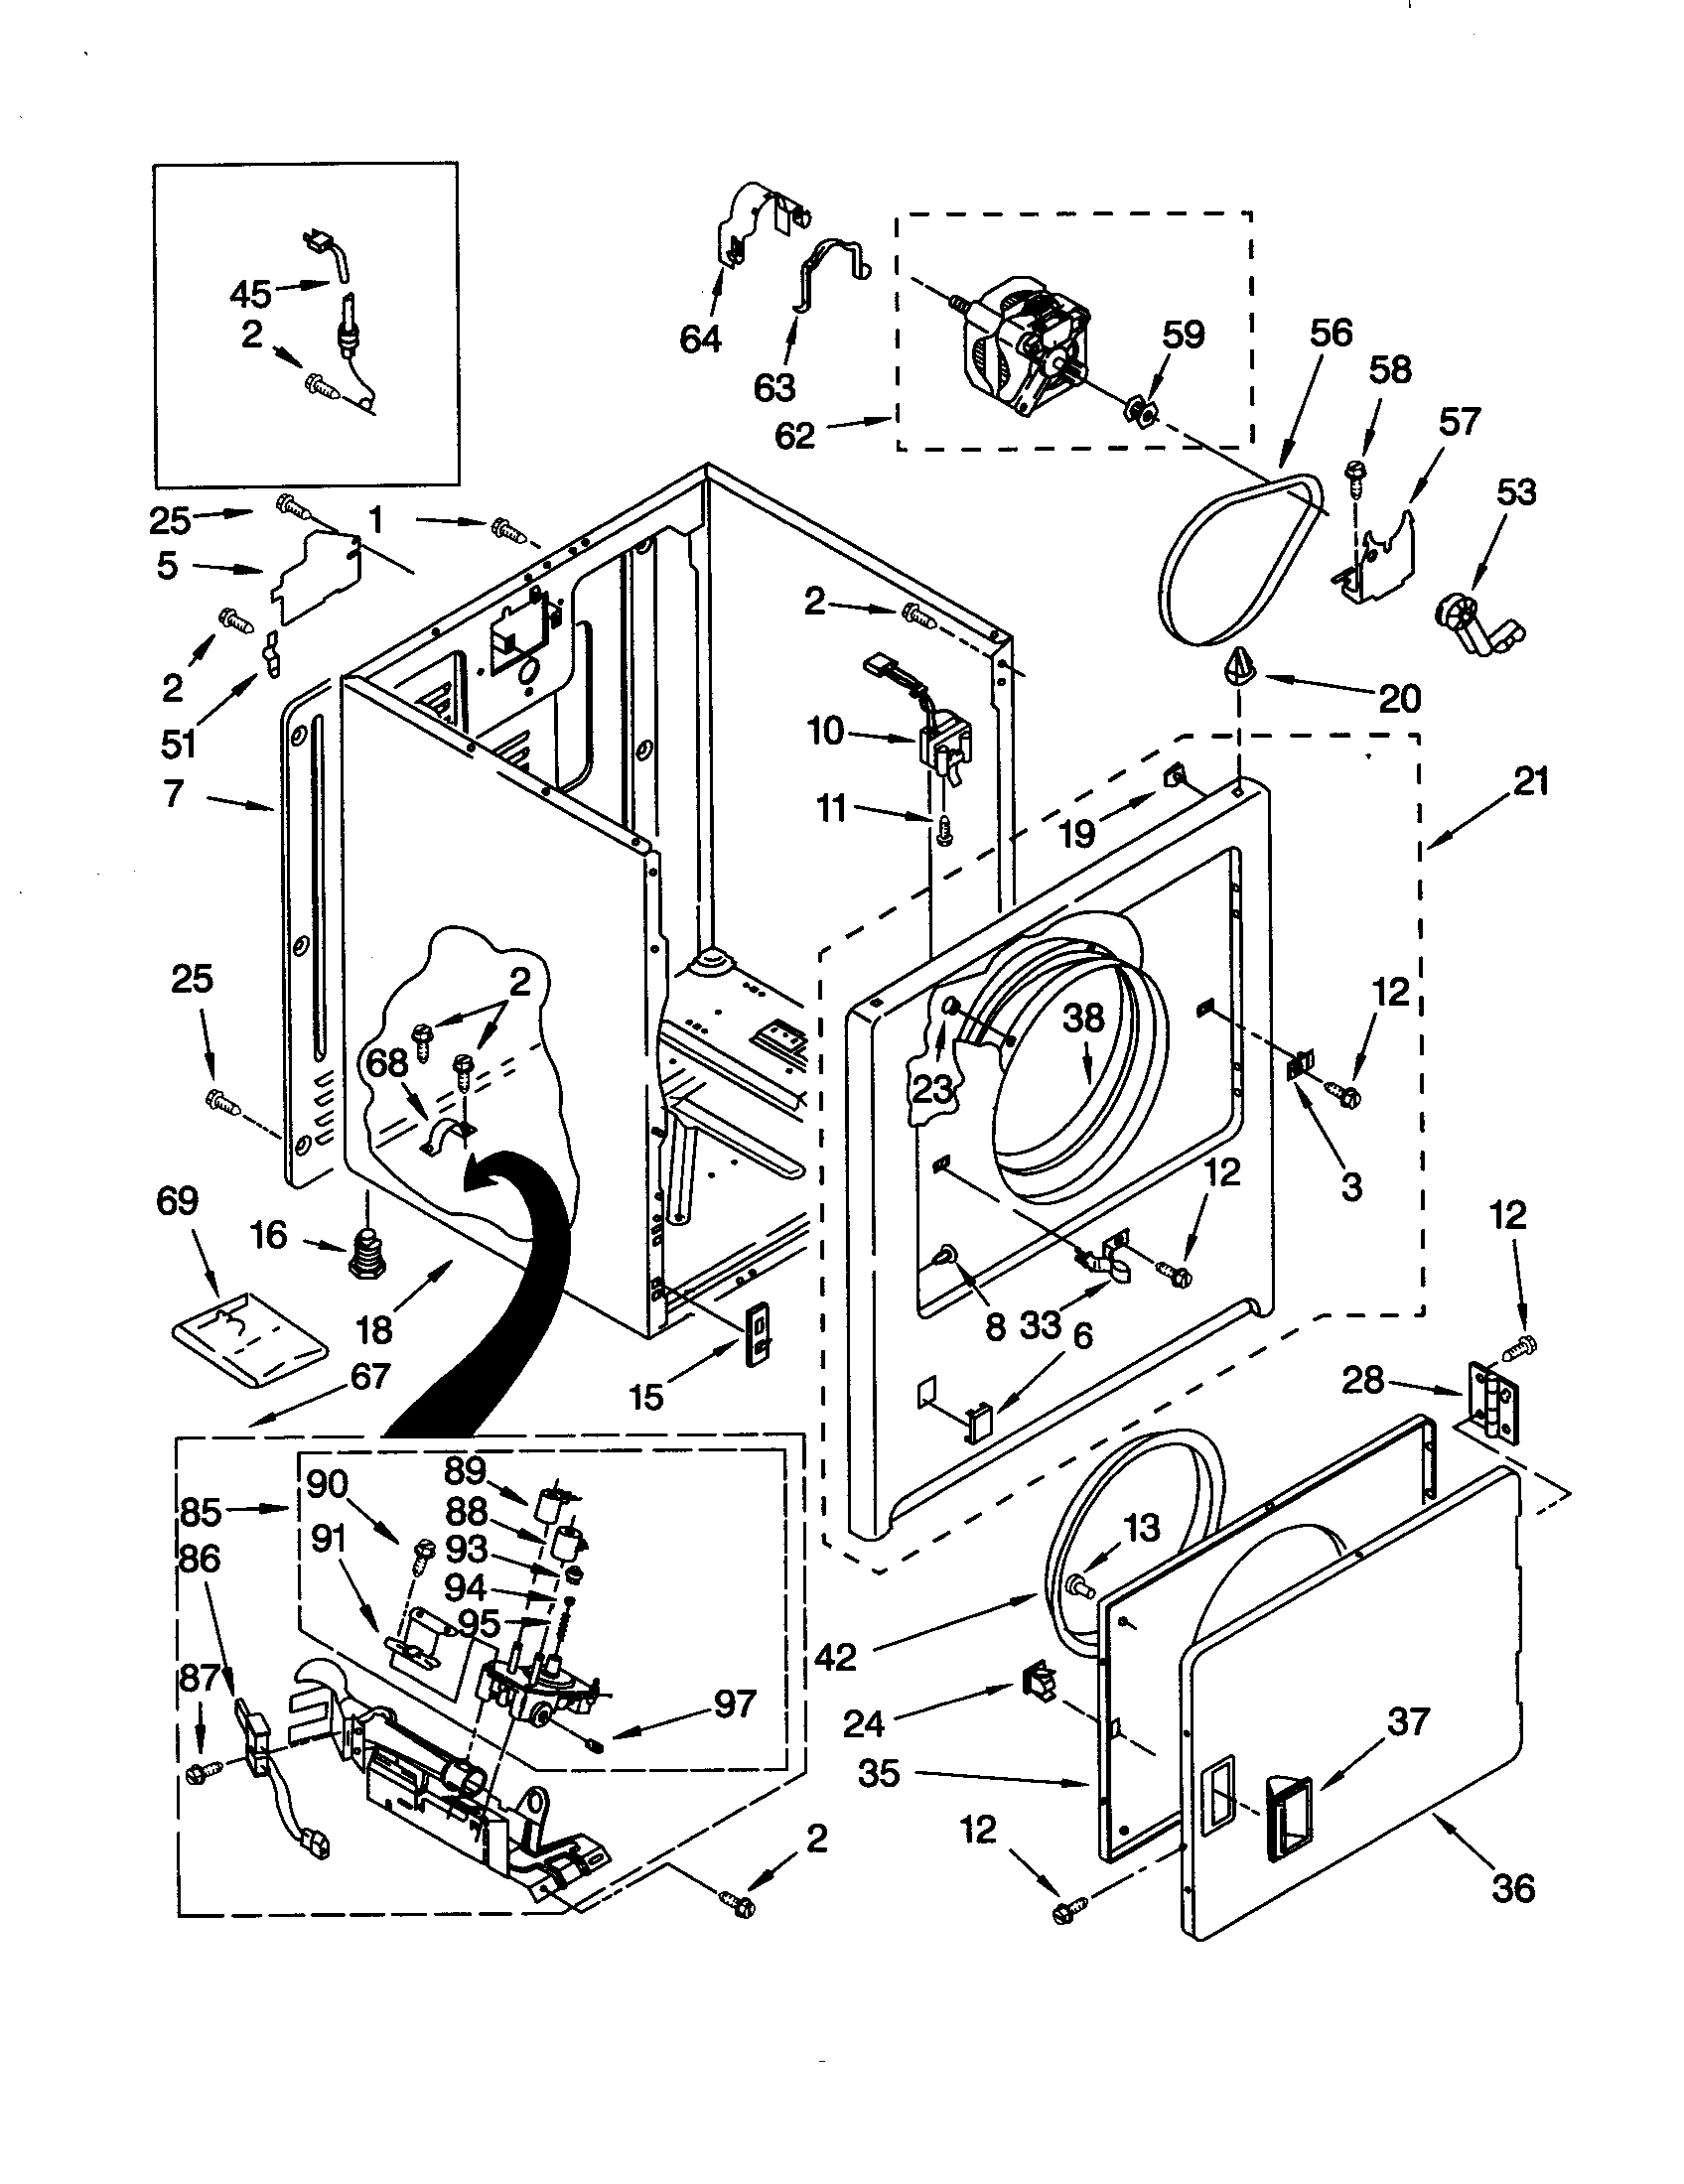 Sears Trash Compactor Wiring Diagram Explained Diagrams Kitchenaid Parts Drive Intertherm